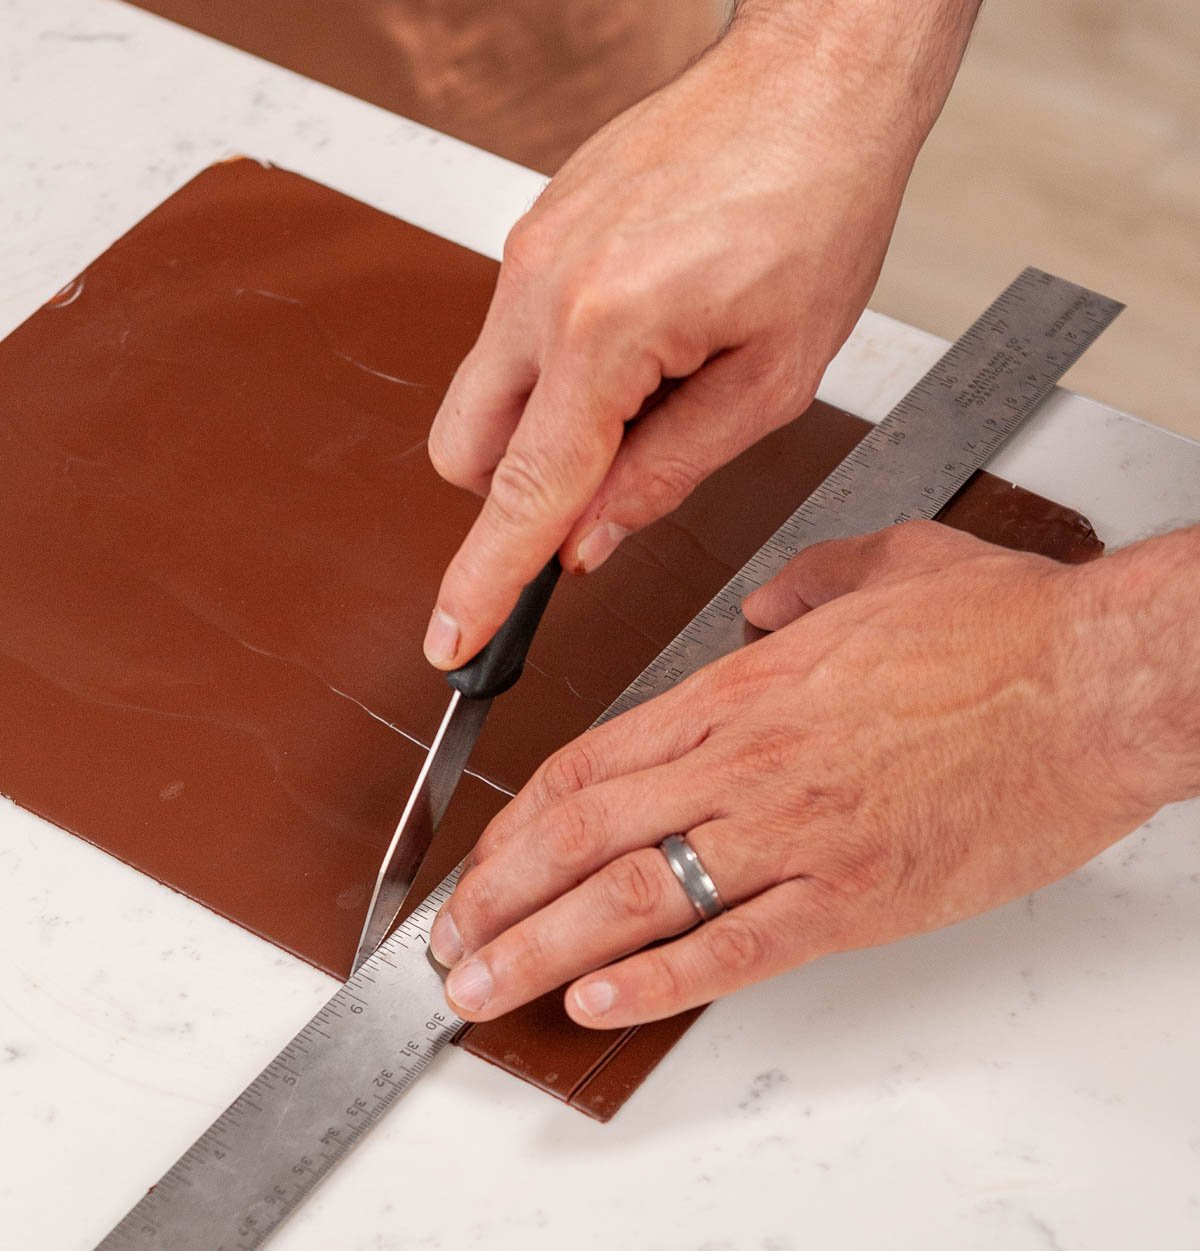 cutting chocolate squares on acetate with a knife and ruler